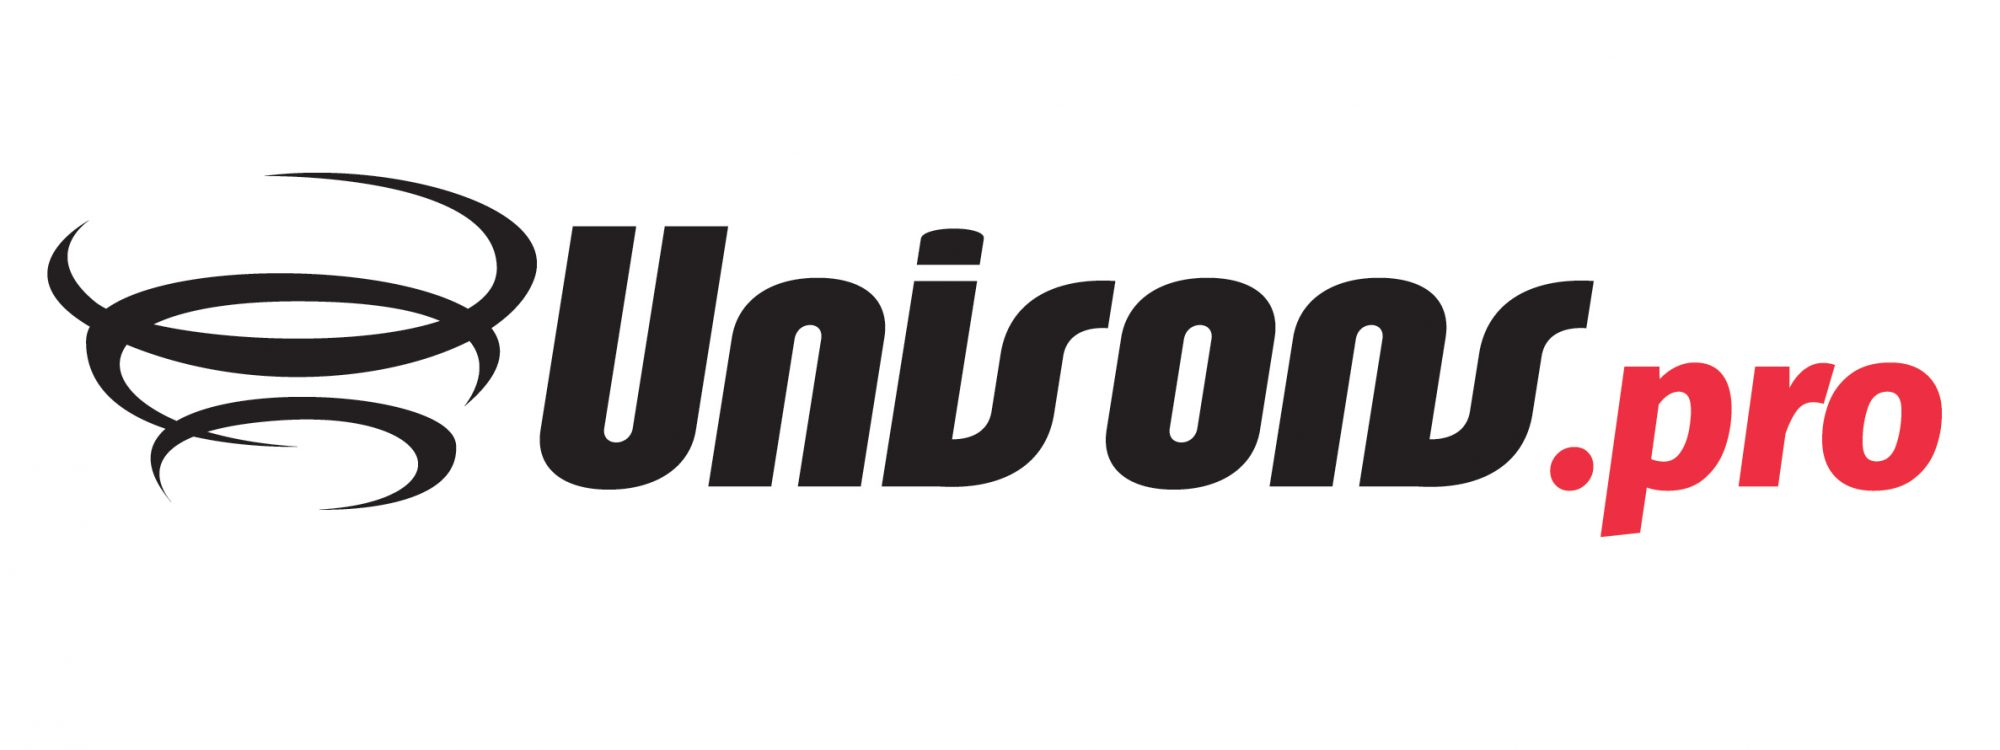 logo Studio unisons